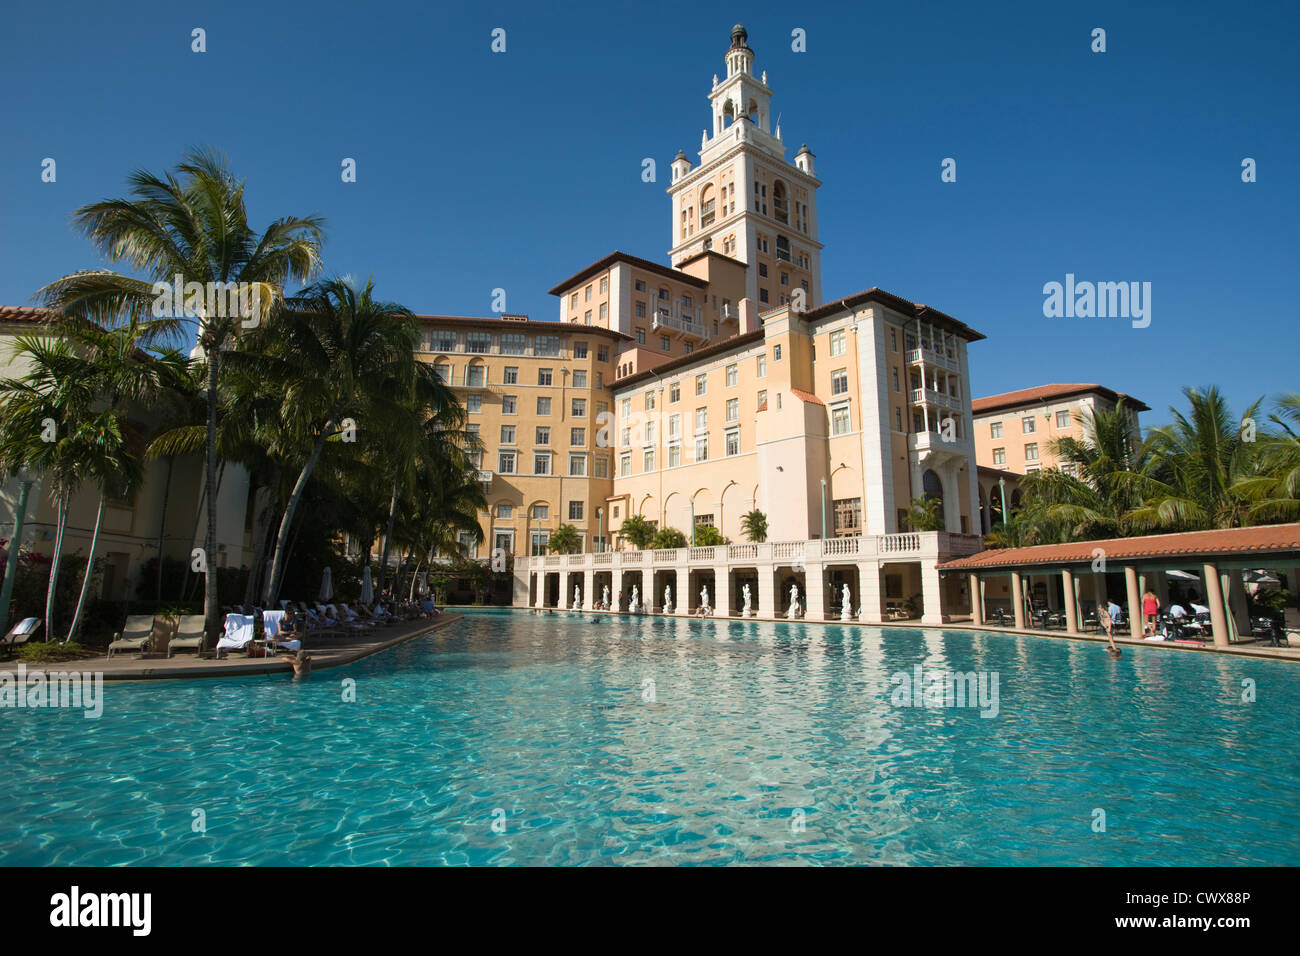 The Biltmore Hotel Coral Gables Miami Florida Usa